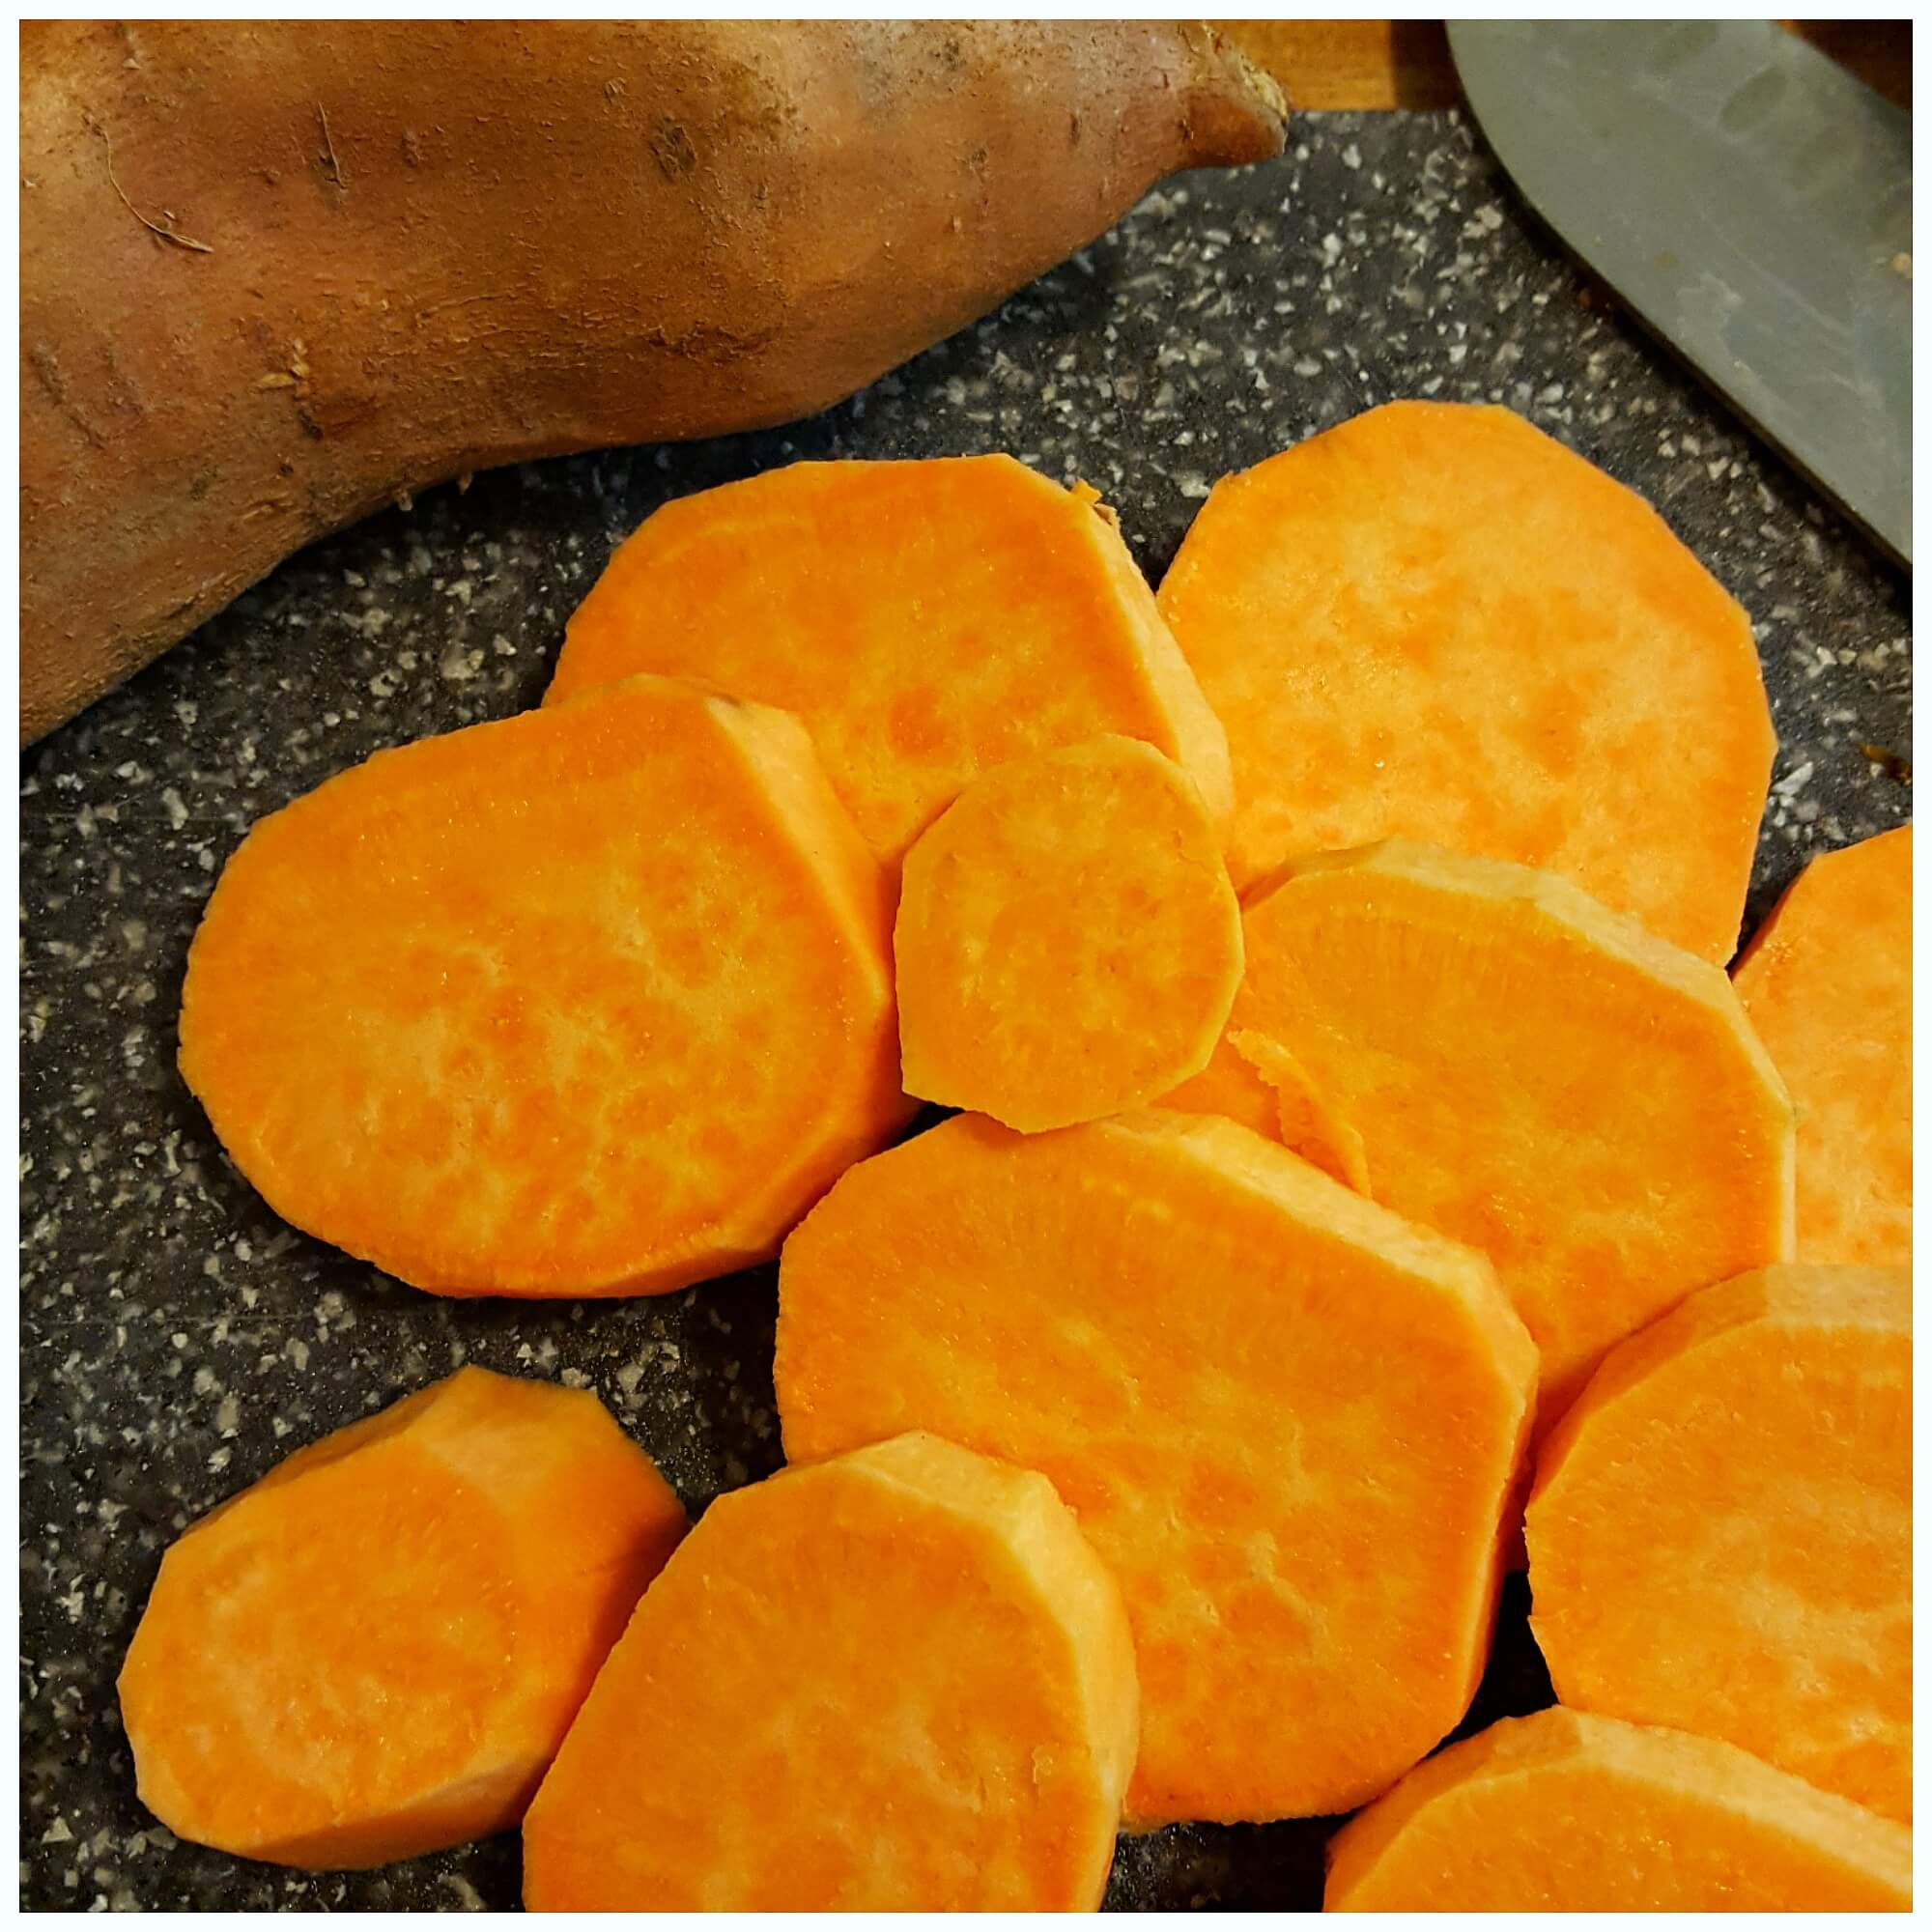 Easy Candied Yams - peeling and slicing sweet potatoes for this holiday side dish